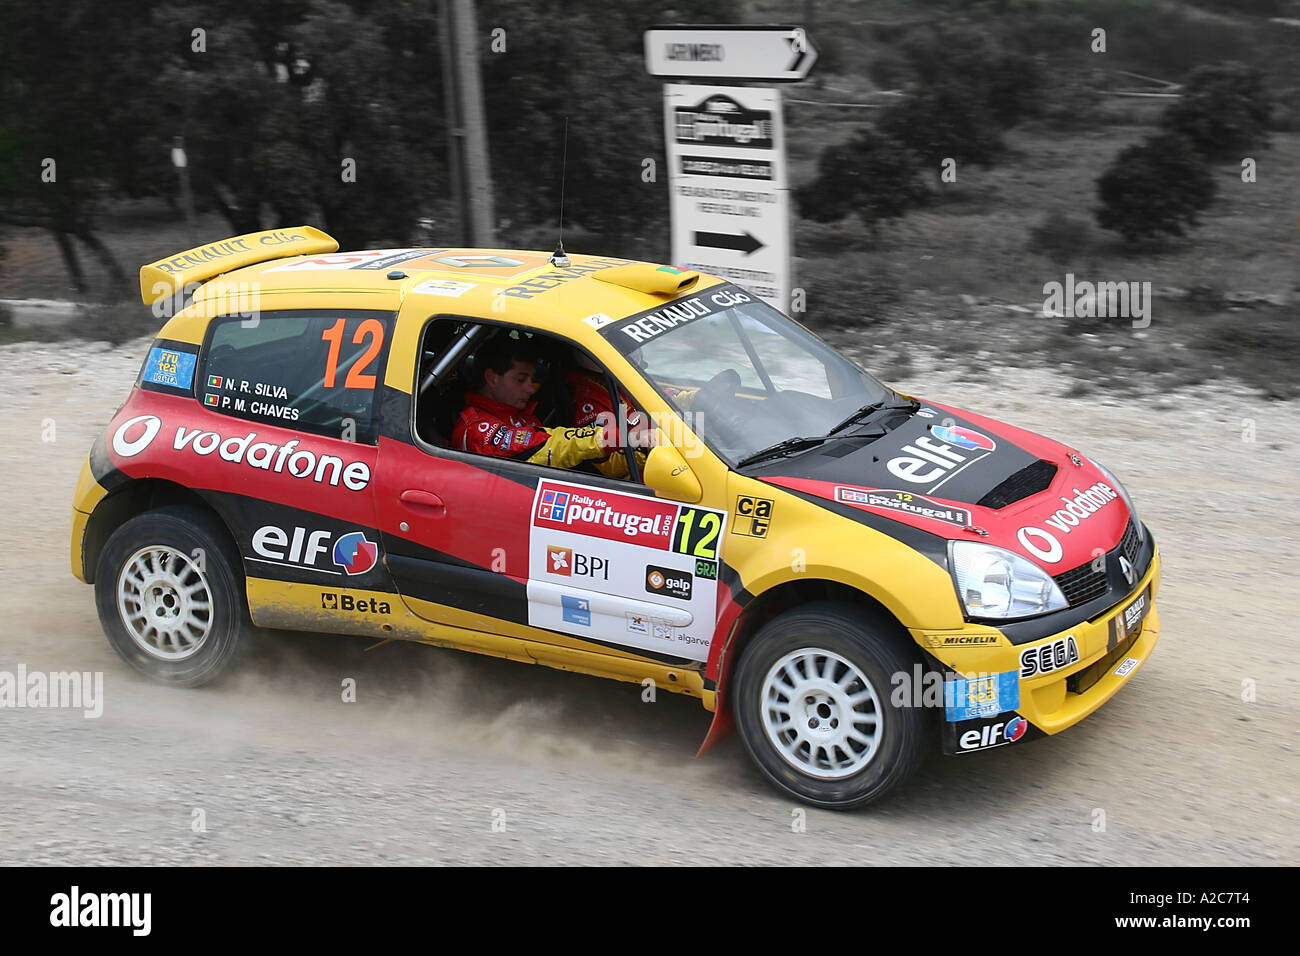 Renault Clio Rally Car Stock Photo Royalty Free Image